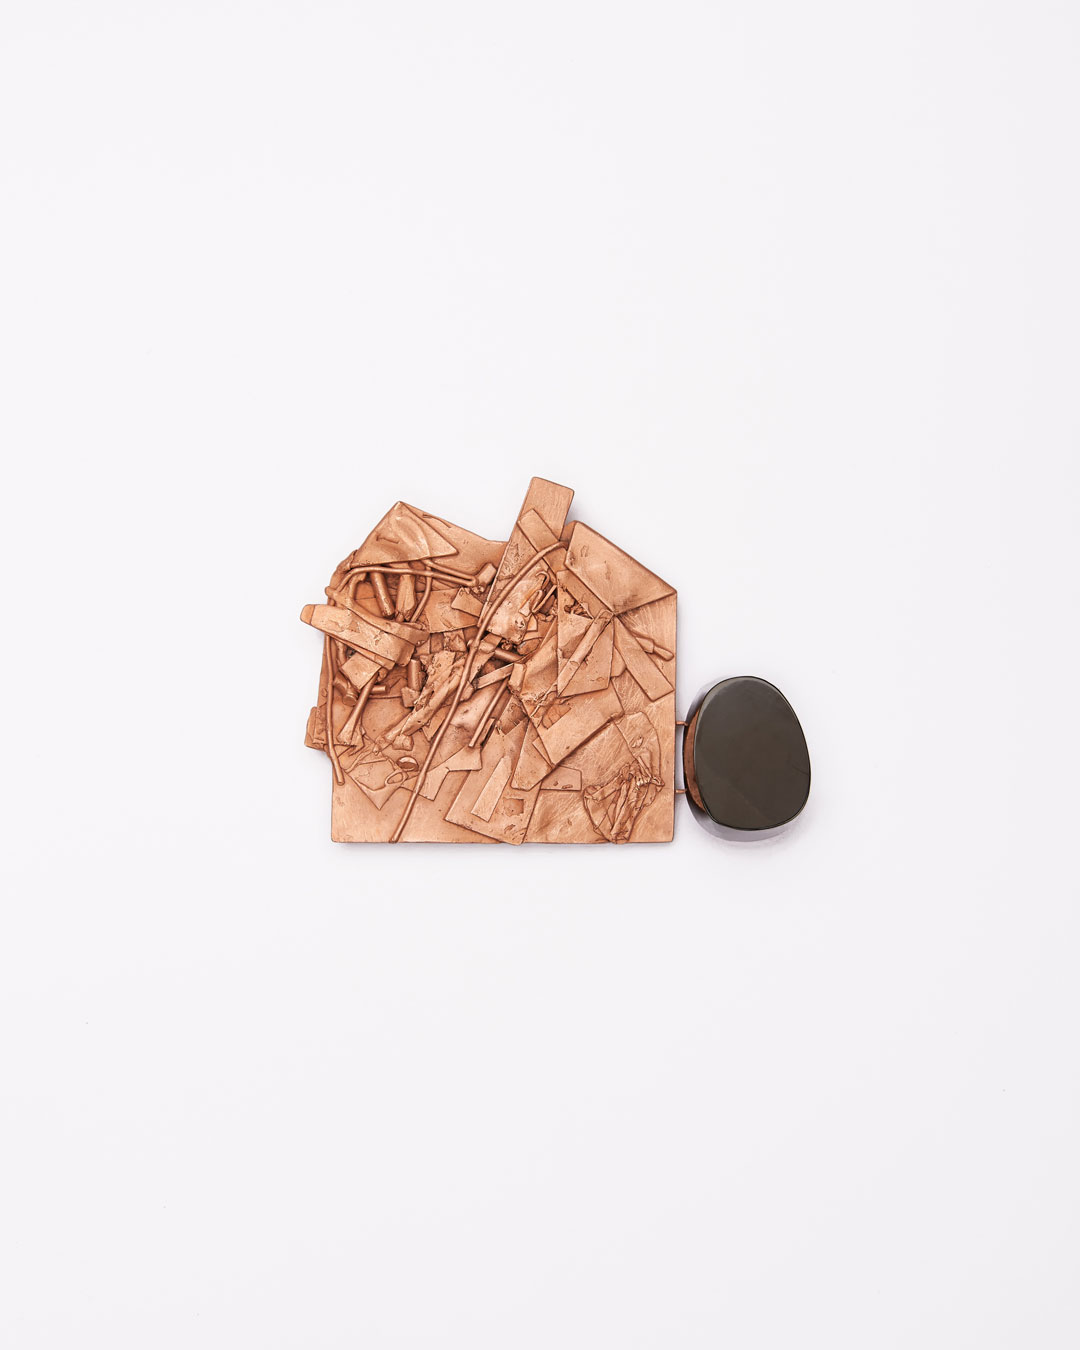 Iris Bodemer, Notizen (Notes), 2016, brooch; bronze, jet, 80 x 110 x 20 mm, €2000